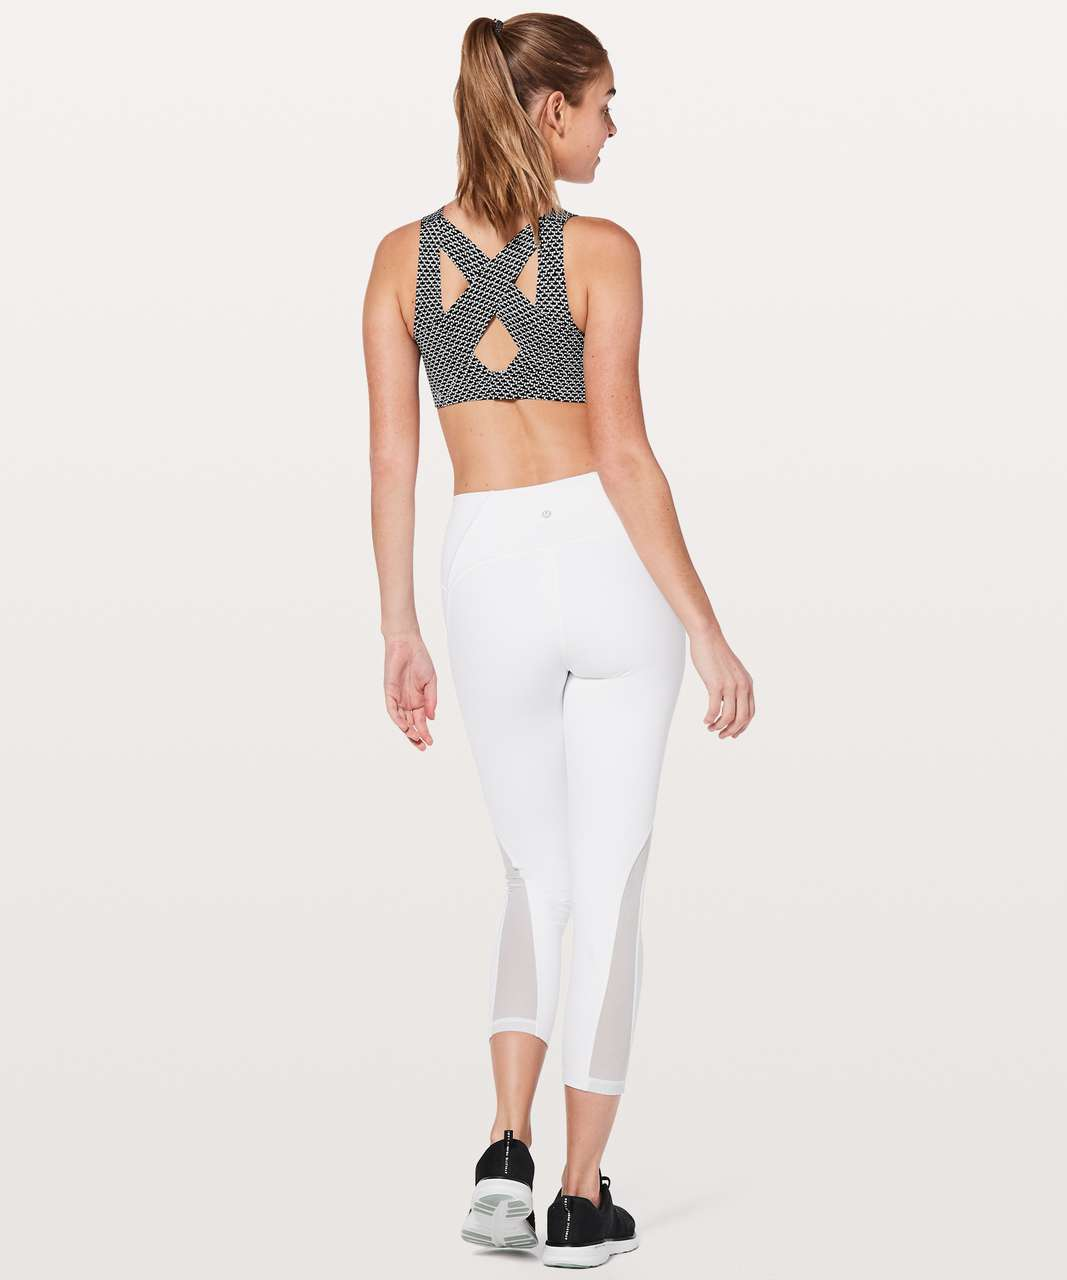 Lululemon Enlite Bra - Monochromic Black